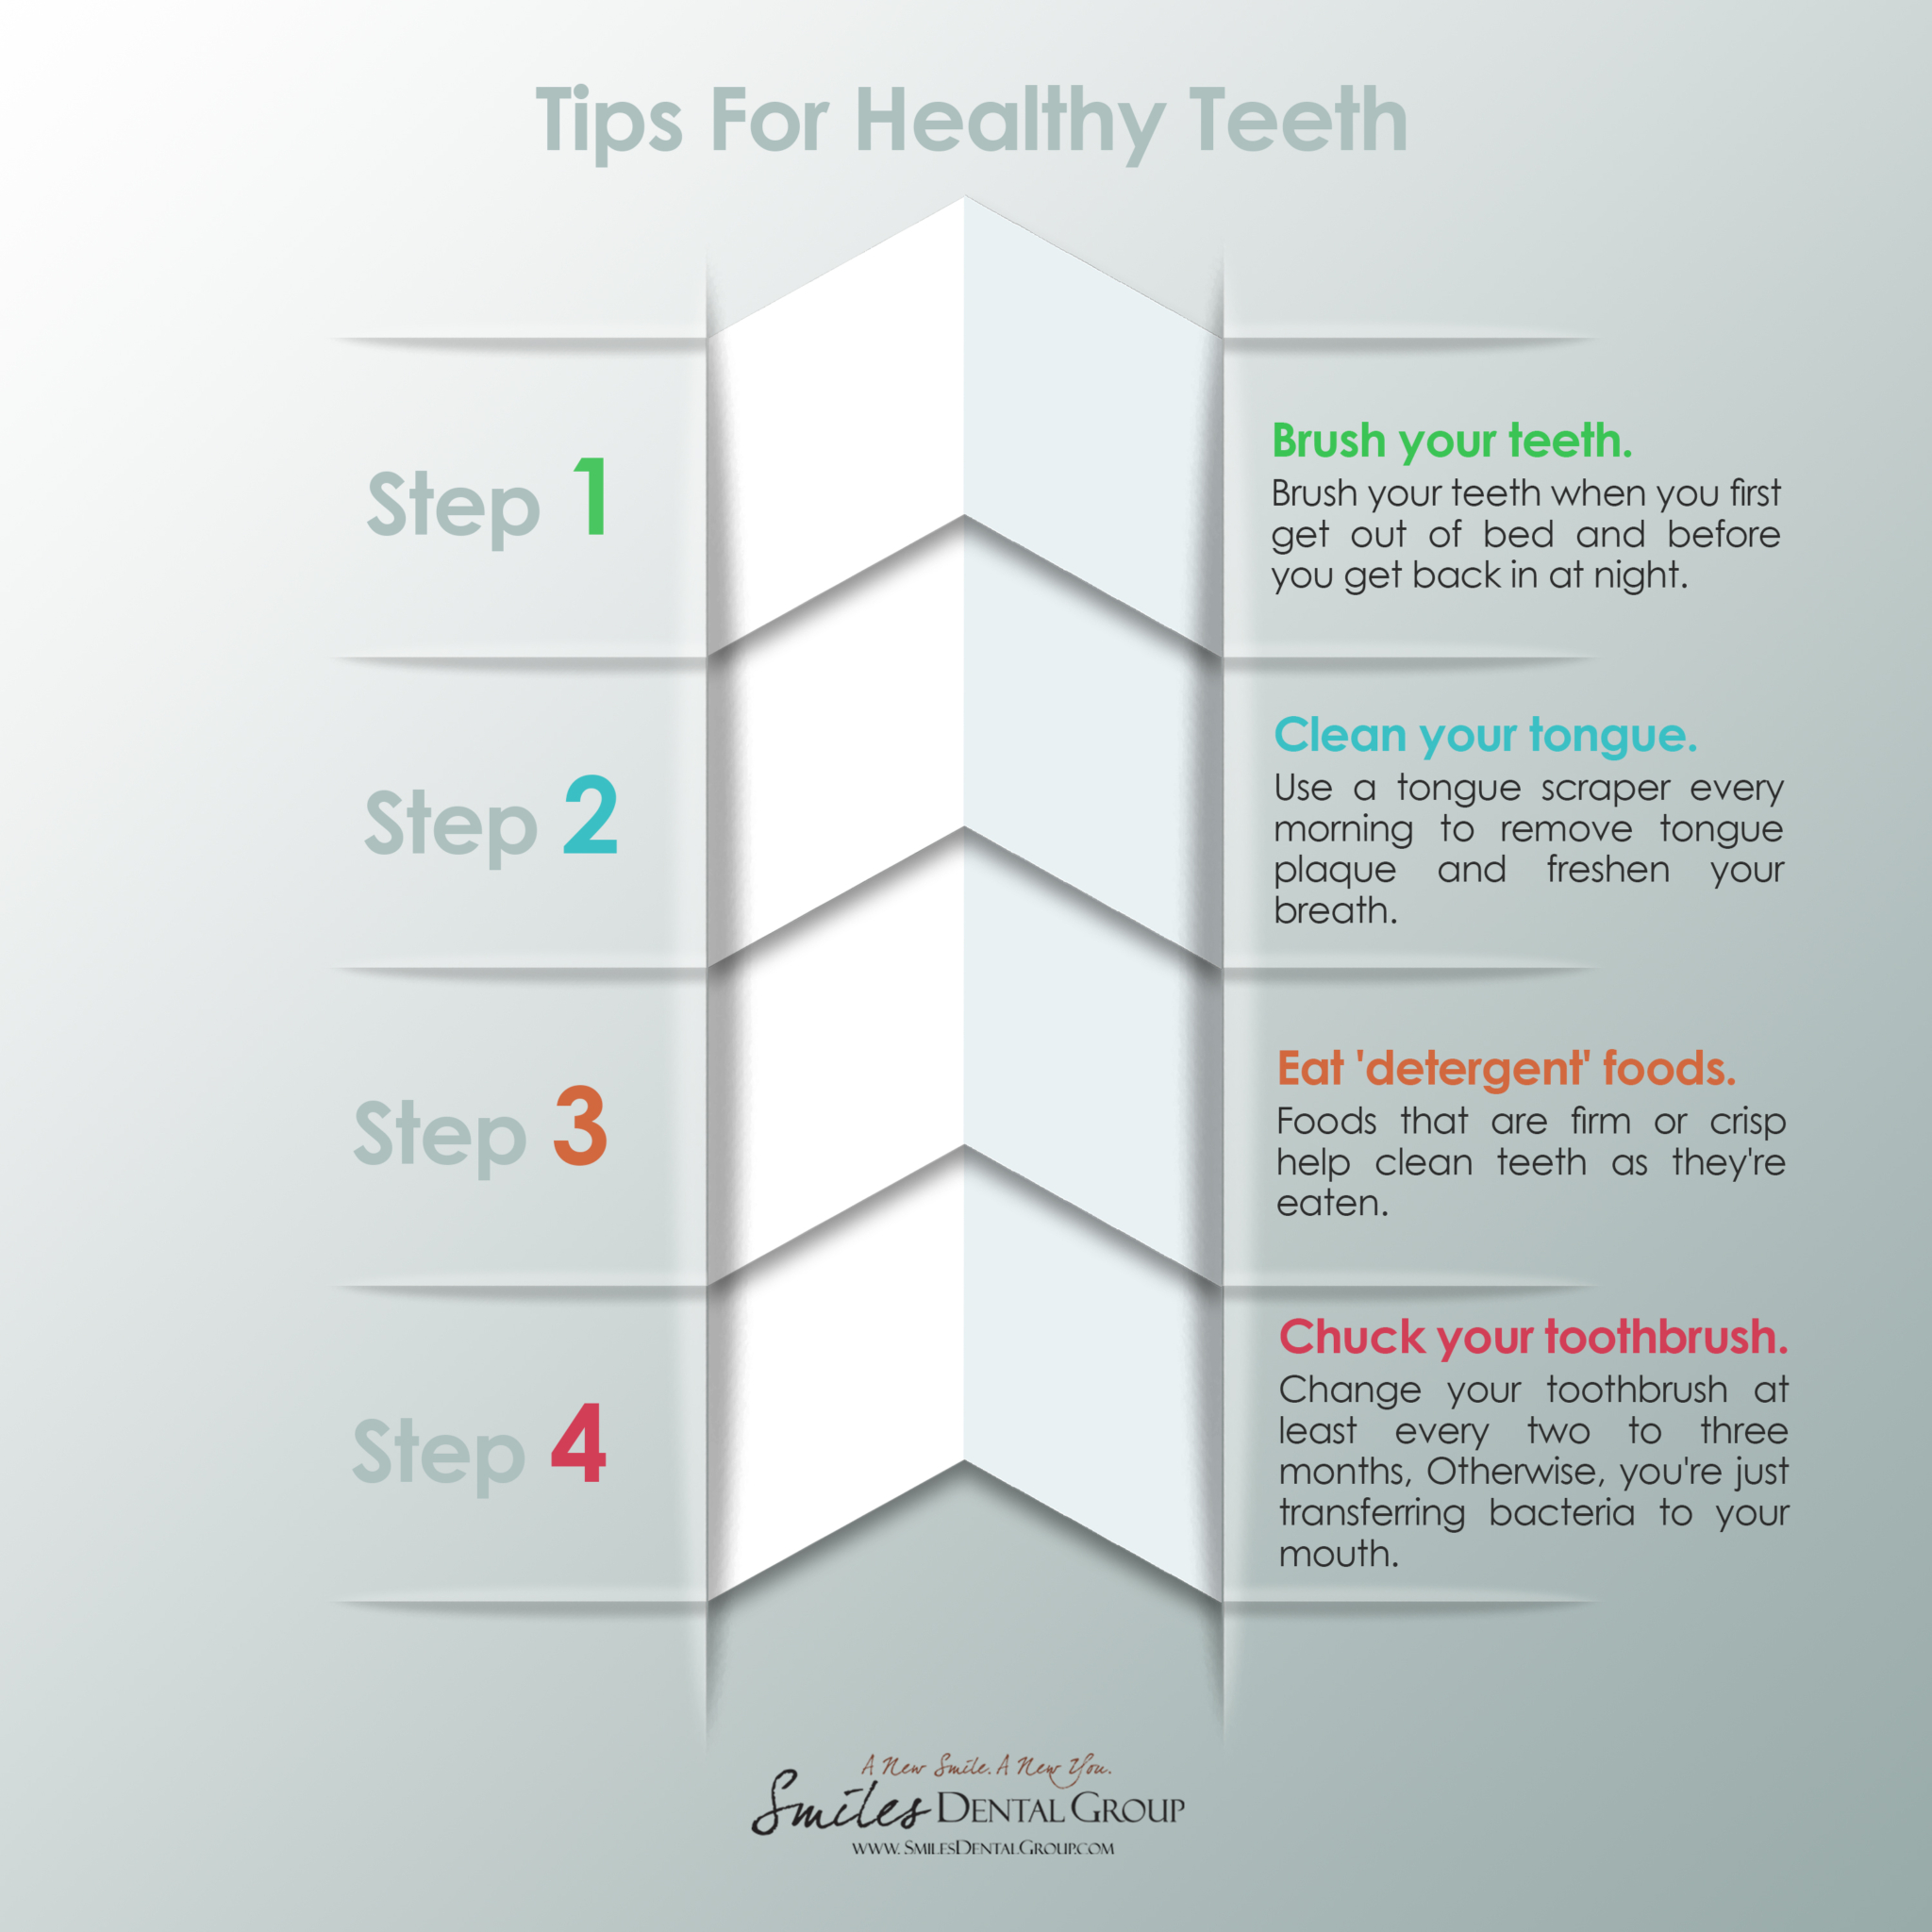 Tips for Healthy Teeth - dental group Edmonton